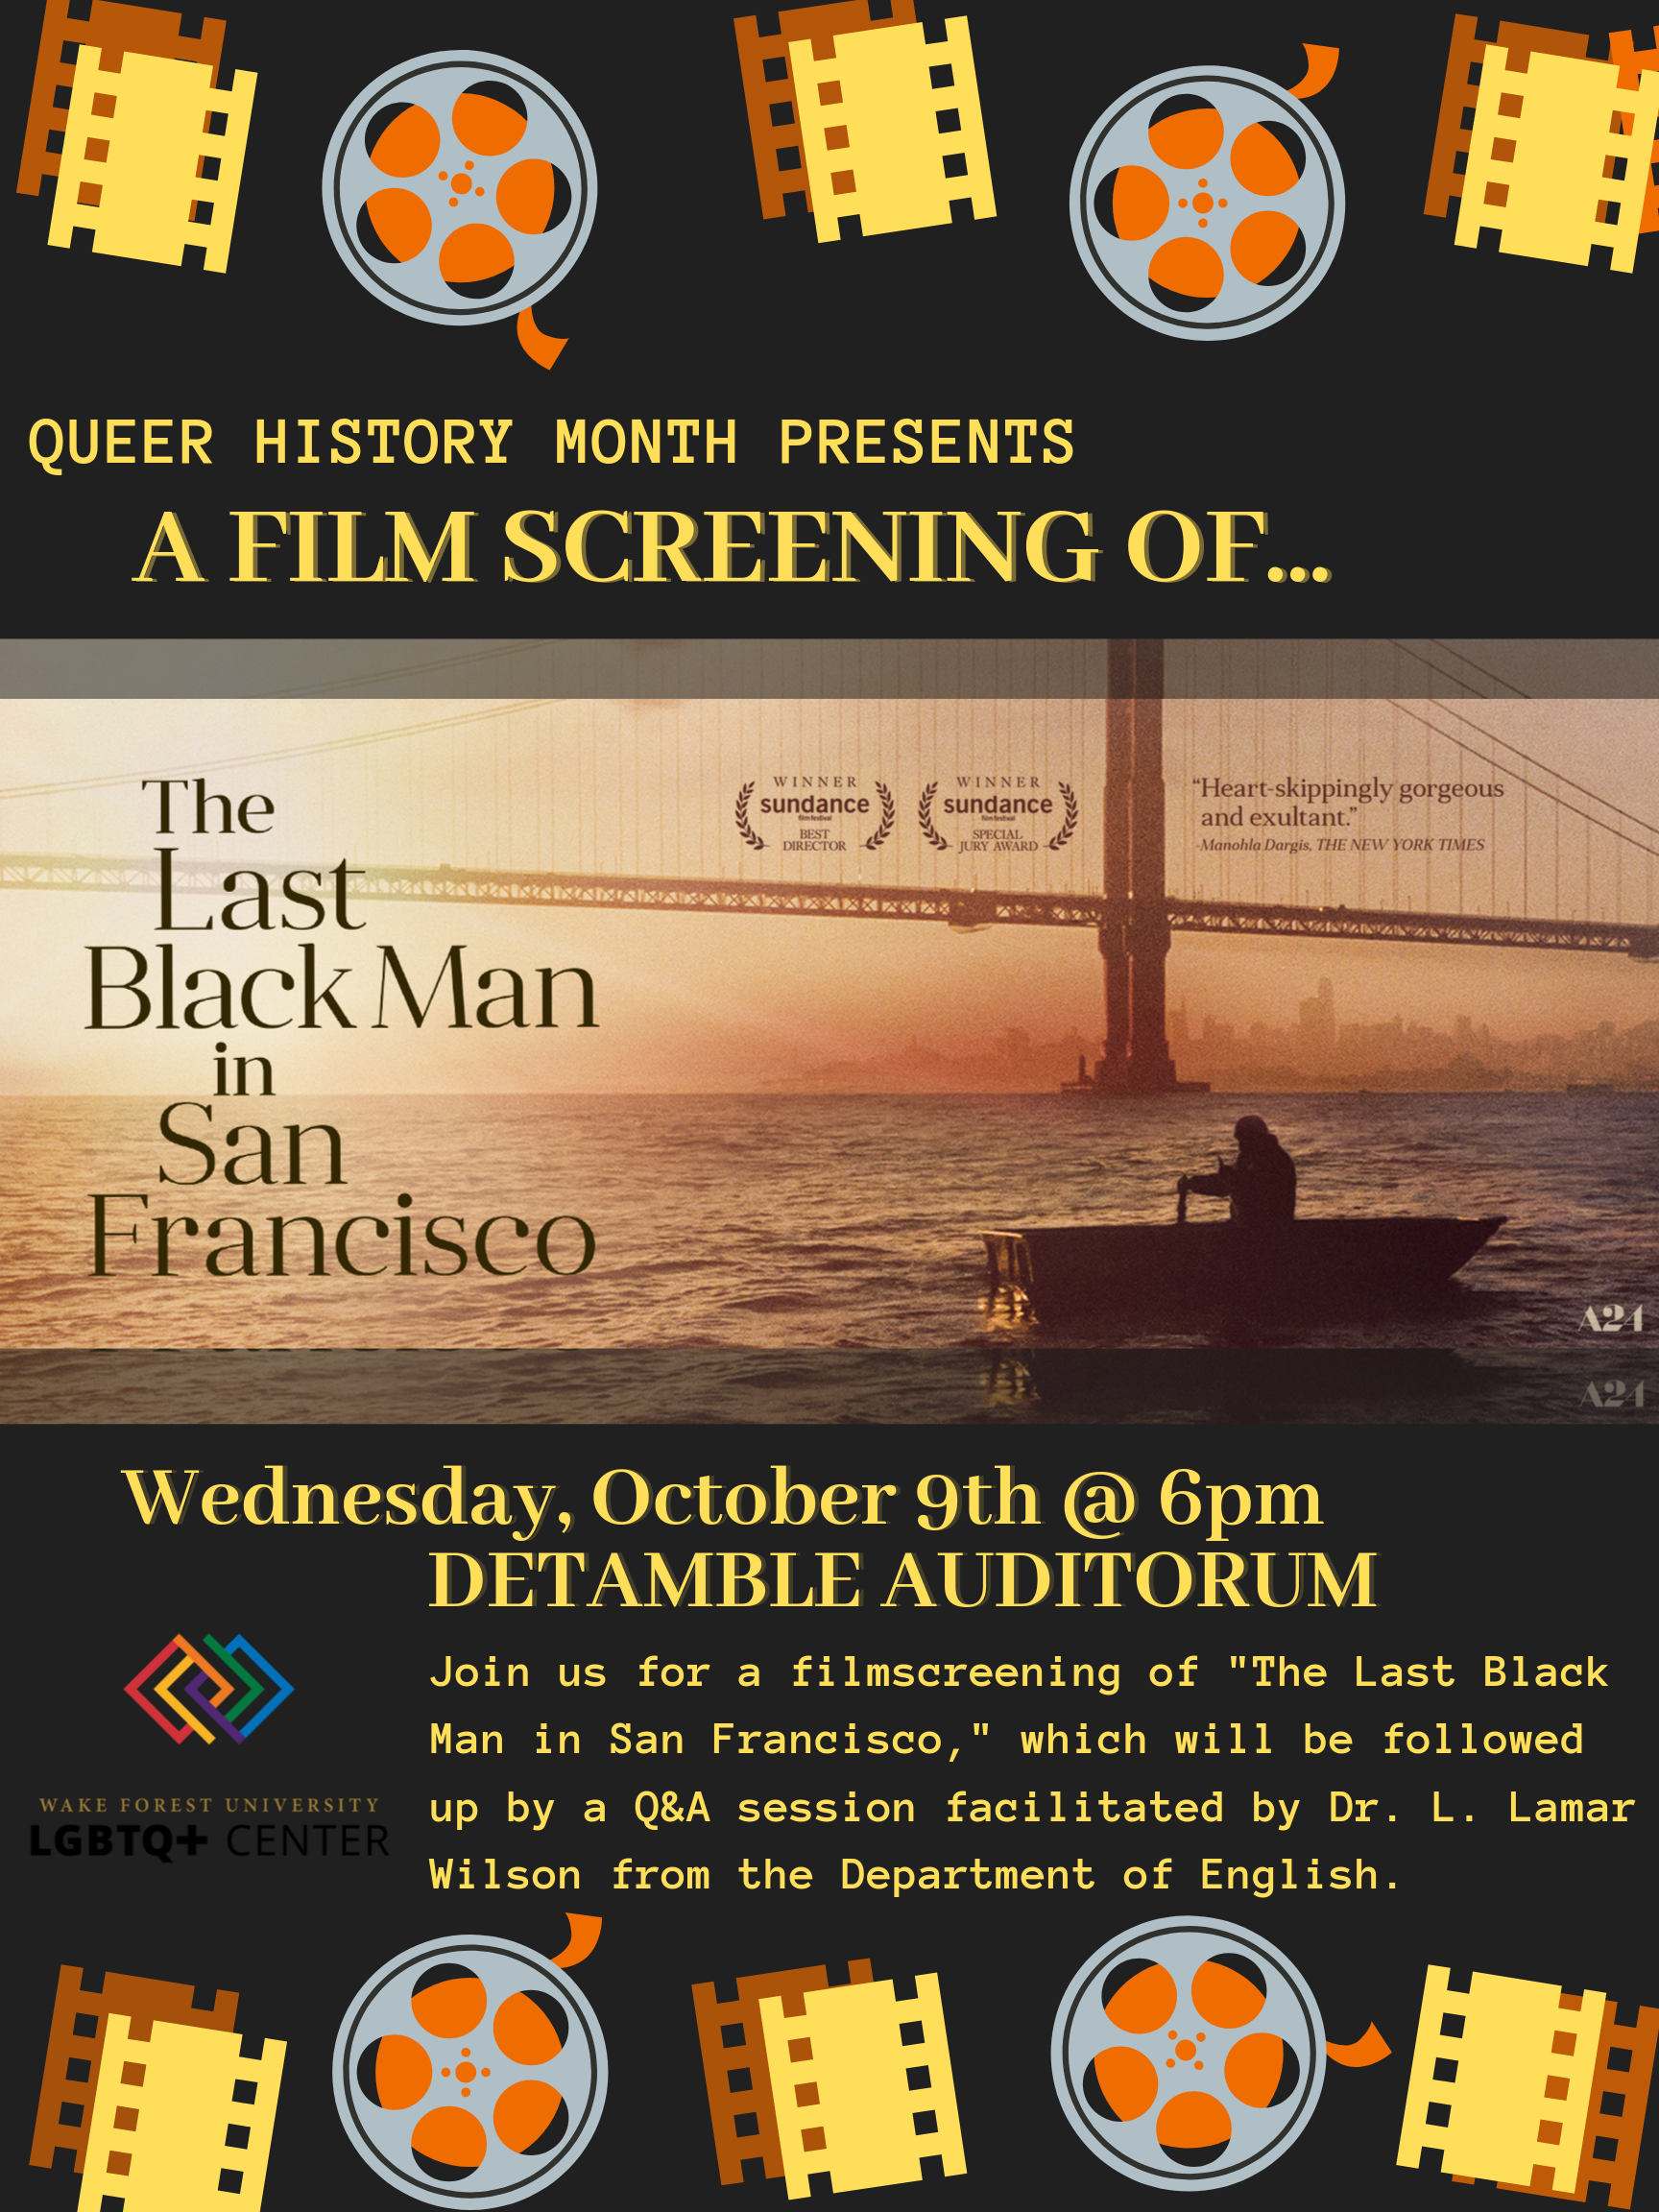 Announcement of Film Screening for the Last Black Man in San Francisco held October 4, 2019